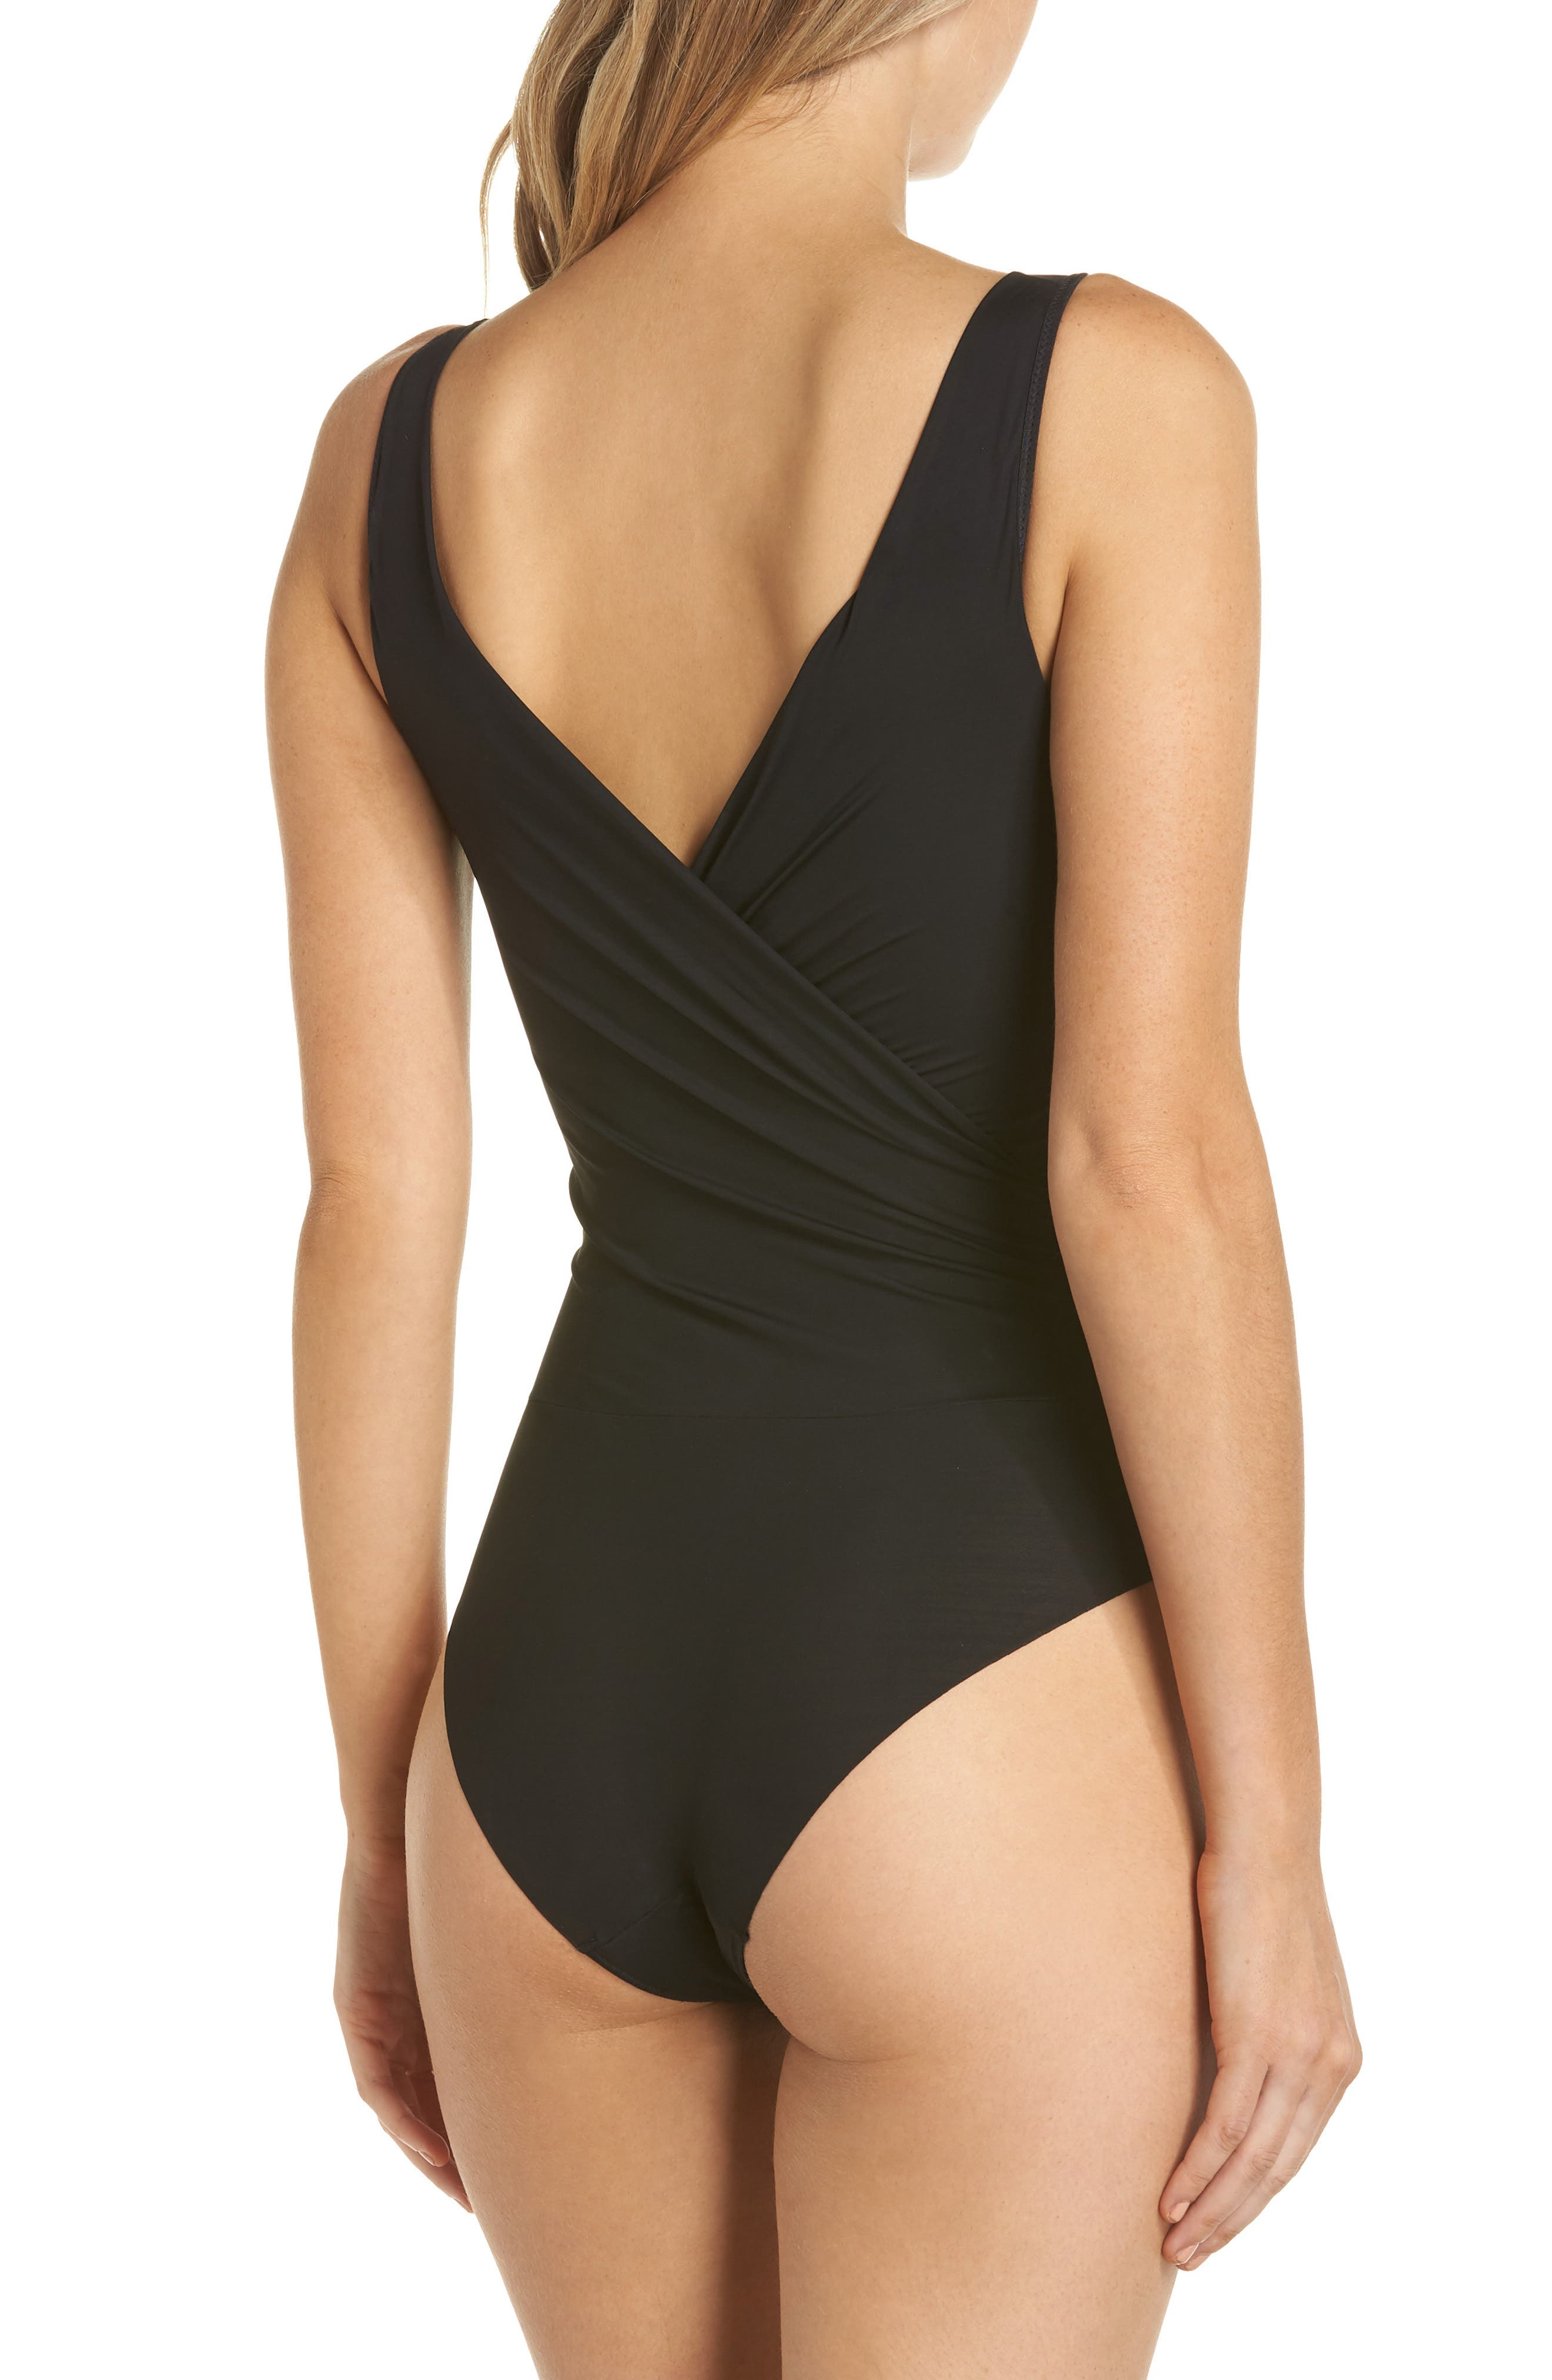 Imprevue Bodysuit,                             Alternate thumbnail 2, color,                             001